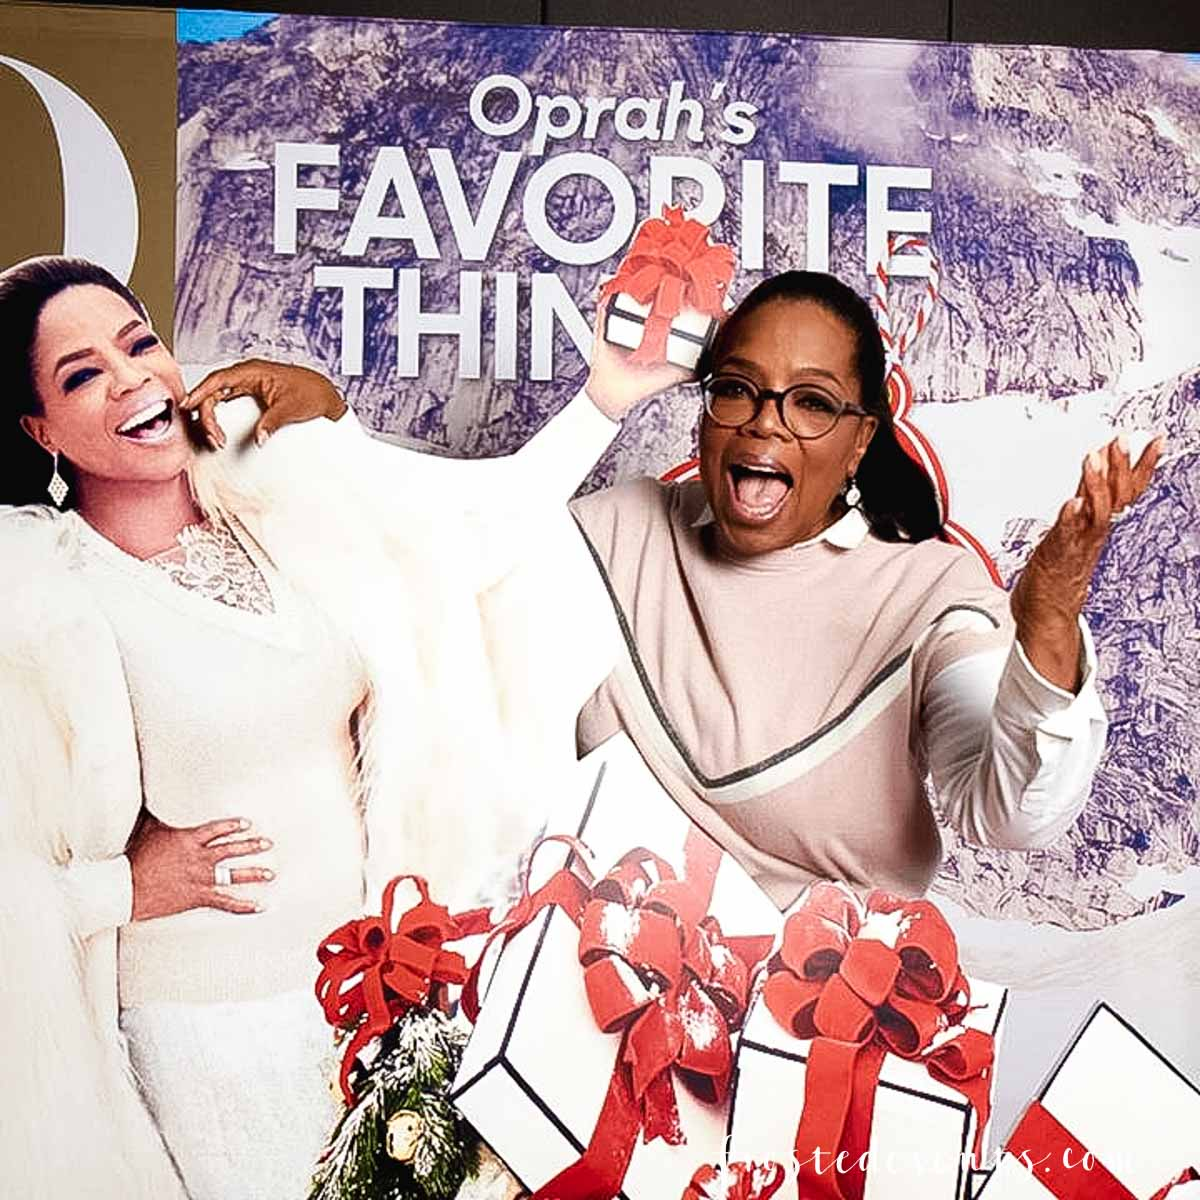 Oprah's Favorite Things 2017 party was last Thursday and I had the unbelievable opportunity to attend and reveal a very exciting secret I've been dying to share. Here's a look at what it's like to be a guest at the best holiday party ever!....  As an OMagazine Insider I get invited to participate in some pretty cool experiences. But never in my wildest dreams did I imagine that I would be invited to Oprah's Favorite Things party! Ya'll, I'm still completely in shock and covered in bruises from pinching myself about a million times. Oh, how I wish you could have seen the happy dance that I did when I opened the email invitation. It would be a viral video for sure. Something comparable to lottery ticket winners or Justin Beiber fans who find out they're going to get to meet the Biebs backstage. There was screaming, lots of screaming... and even tears of joy. Maybe wails of joy, sobs. Ok, I was a sobbing, wailing, ecstatic hot mess. It was truly that exciting! Here we are in the elevator on our way up to the party. I adore my  OMag Insiders tribe! It's such a wonderful group of inspiring ladies from all walks of life. They are creative, brilliant, funny, strong and successful as hell. But what really makes them special is the love and support they so generously share with each other. I'm so blessed to be a part of this family! My heart was racing as we made our way into the room. You could feel the buzz of excitement walking in, a mix of media and marketers, executives and a few celebrities too! Our fabulous elf Cara guided us to our table by the stage before giving us a mini tour of the party. A cocktail bar featuring Oprah's favorite tequila, Casa Dragones was serving up drinks at the back. Guests were taking pics with the life-size replica of the December O Magazine photo stand-in. I grabbed a cocktail, some nibbles from the delicious food spread and a cupcake (or two!) and mingled a bit before the show began. Gayle King and Adam Glassman were our hosts for the evening, taking the stage to reveal the list of holiday gifts Oprah hand selected for this years list. They uncovered the first box and explained why Oprah chose this gift and how she goes about choosing all the gifts. And then Adam said the magic words....